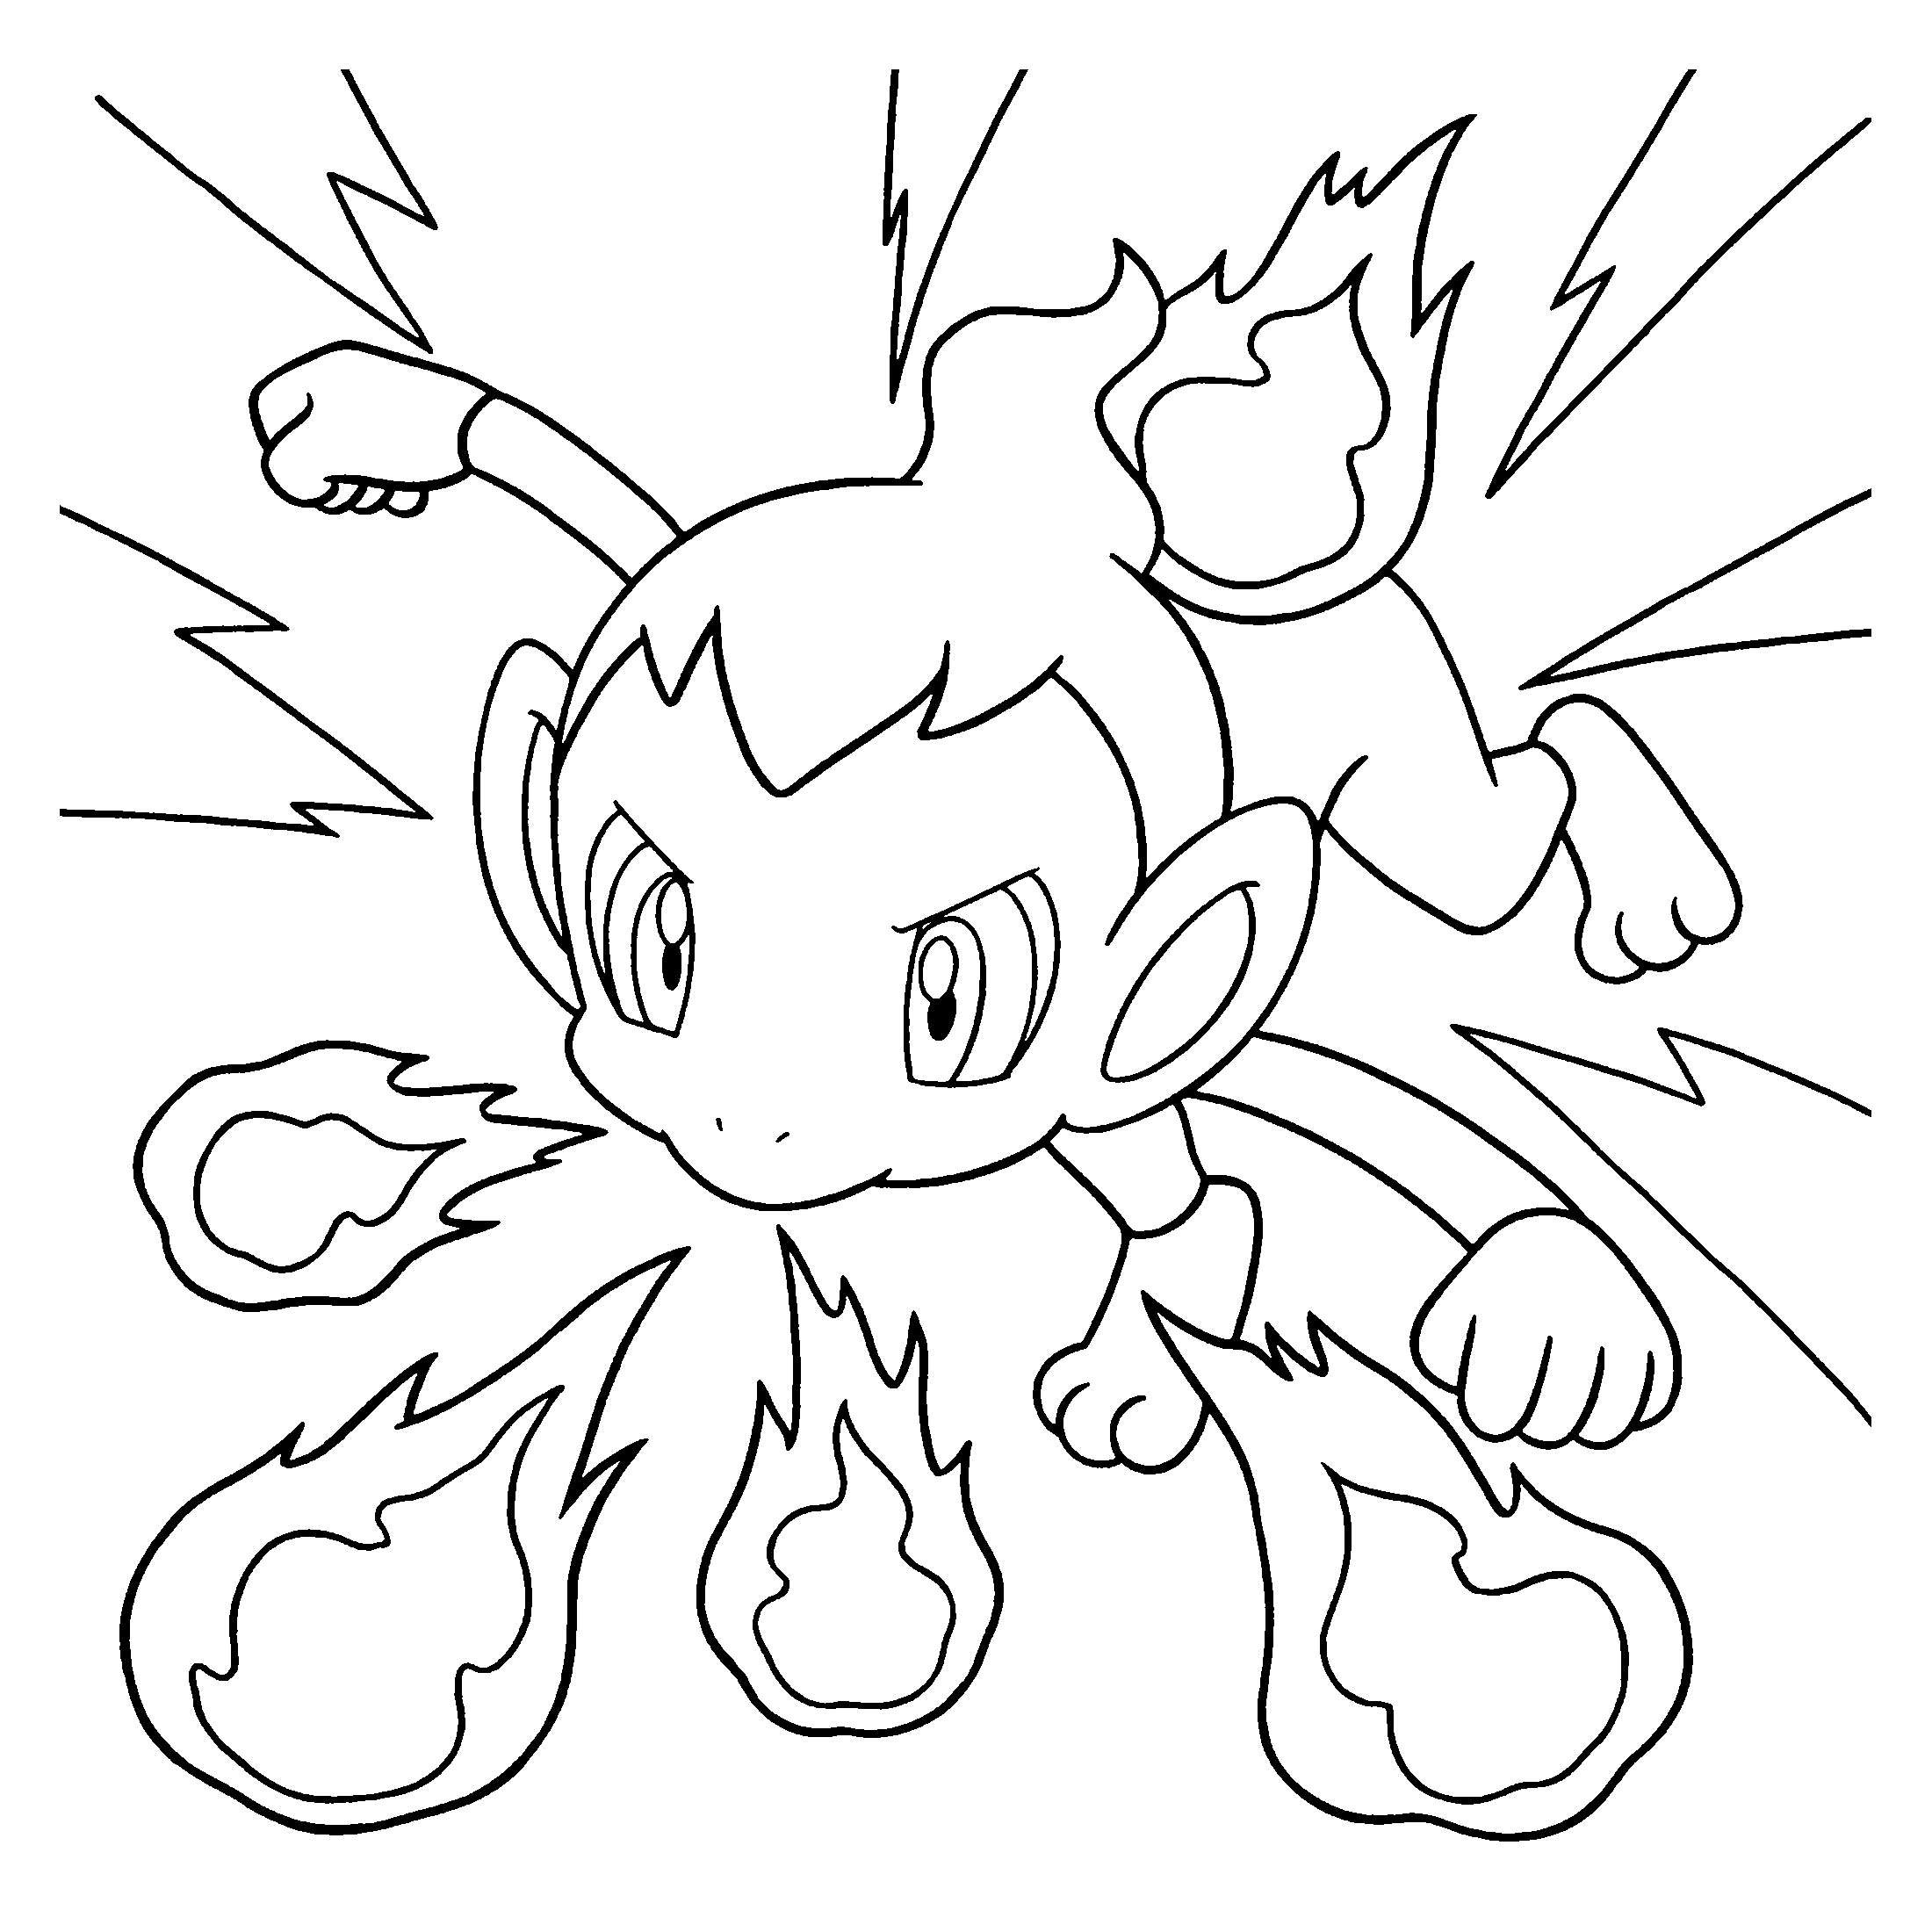 Ausmalbilder Pokemon Pikachu : Pokemon Diamond Pearl Coloring Pages Coloringpages1001 Com